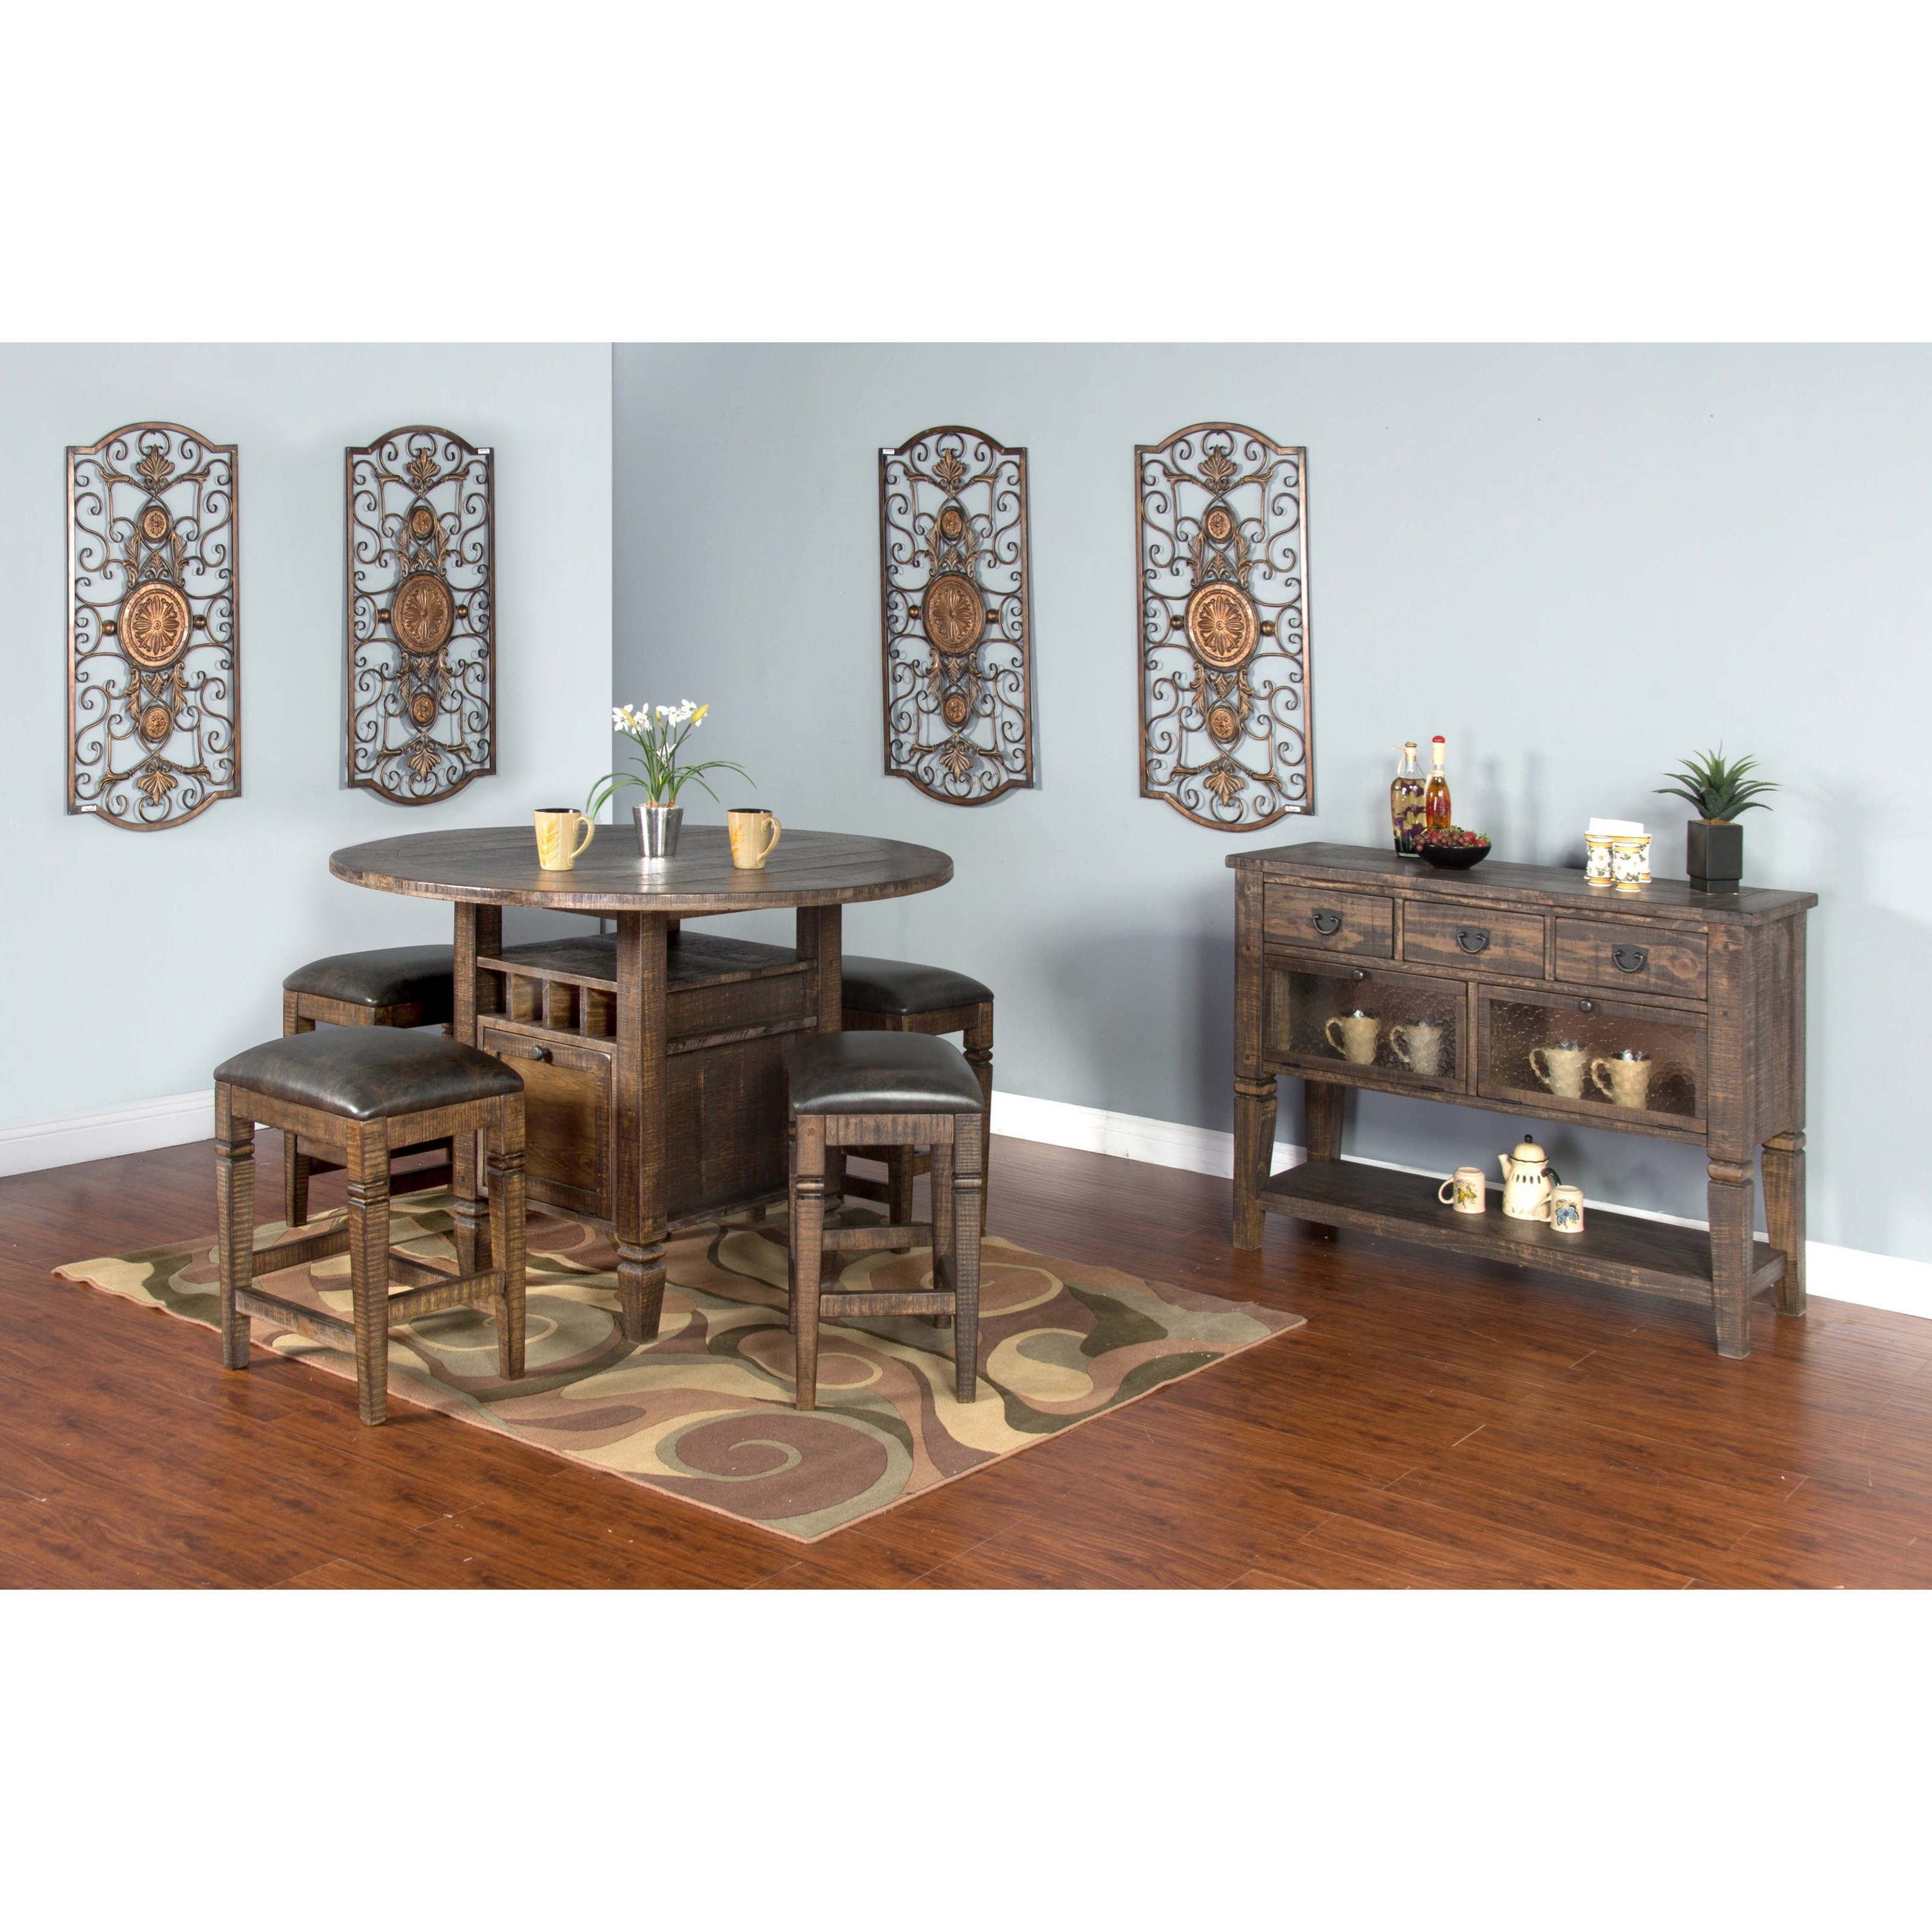 Casual Dining Room Designs: Sunny Designs Homestead Casual Dining Room Group